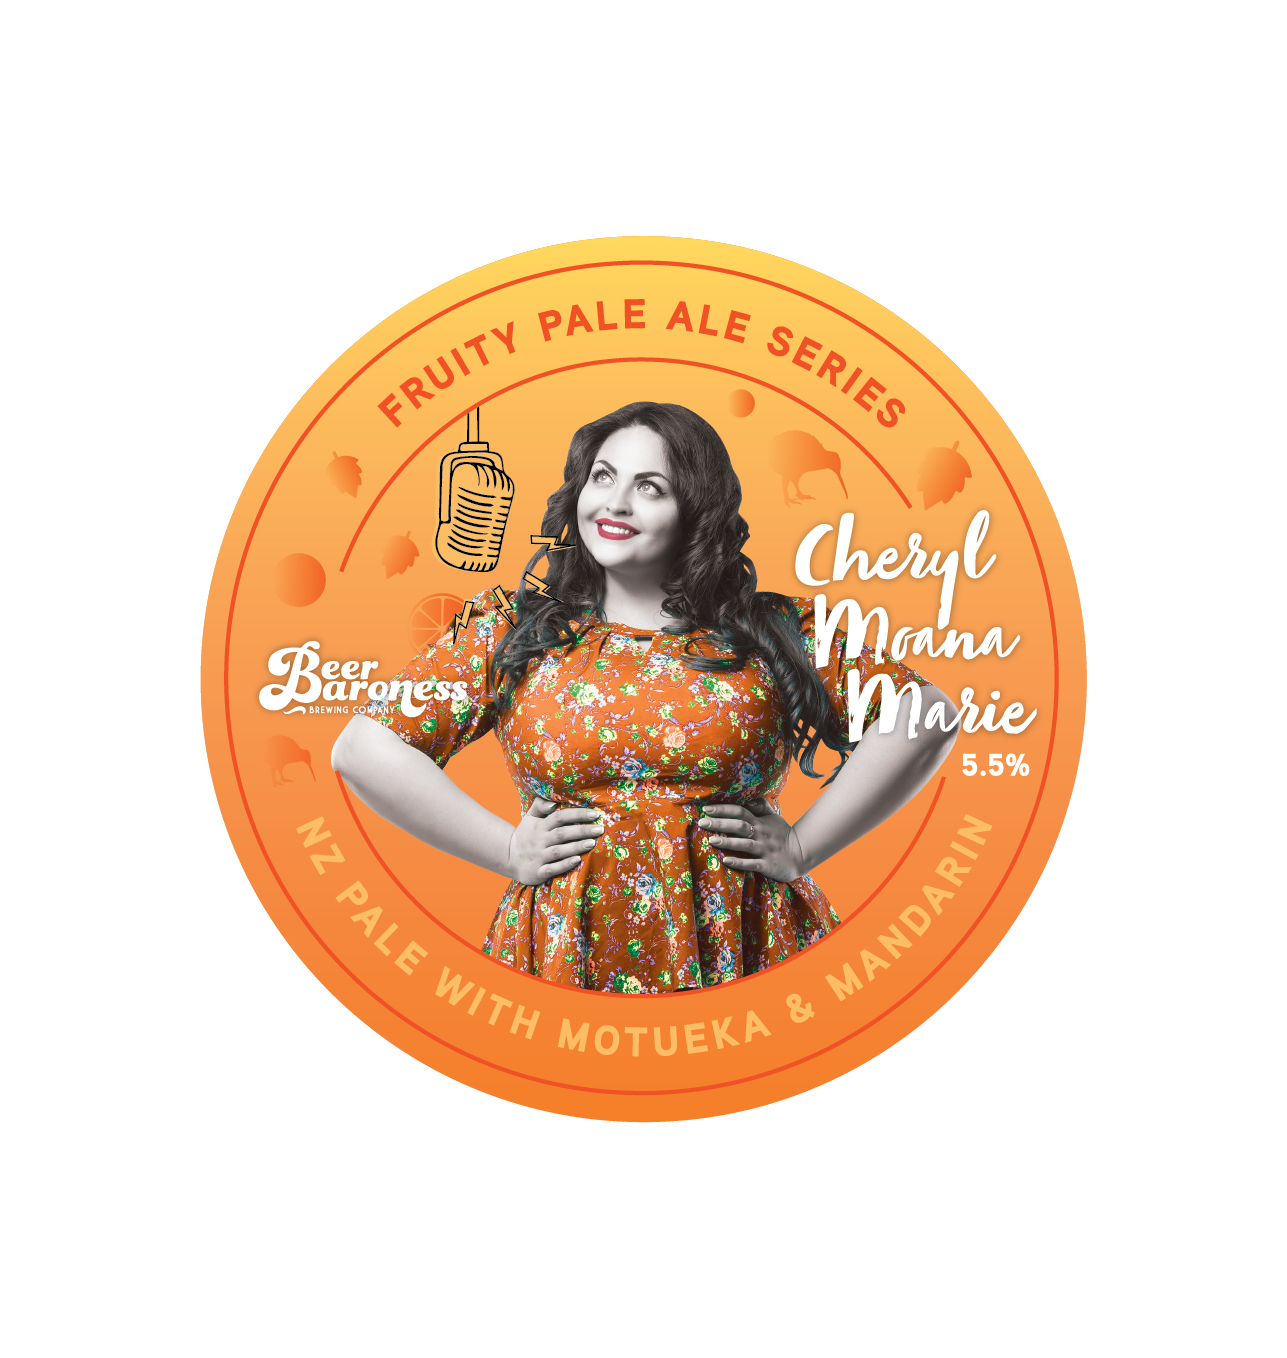 DD004554 Beer Baroness - Fruited Pale Ale Series Tap Badges Supply T2P - Cheryl Moana Marie.png